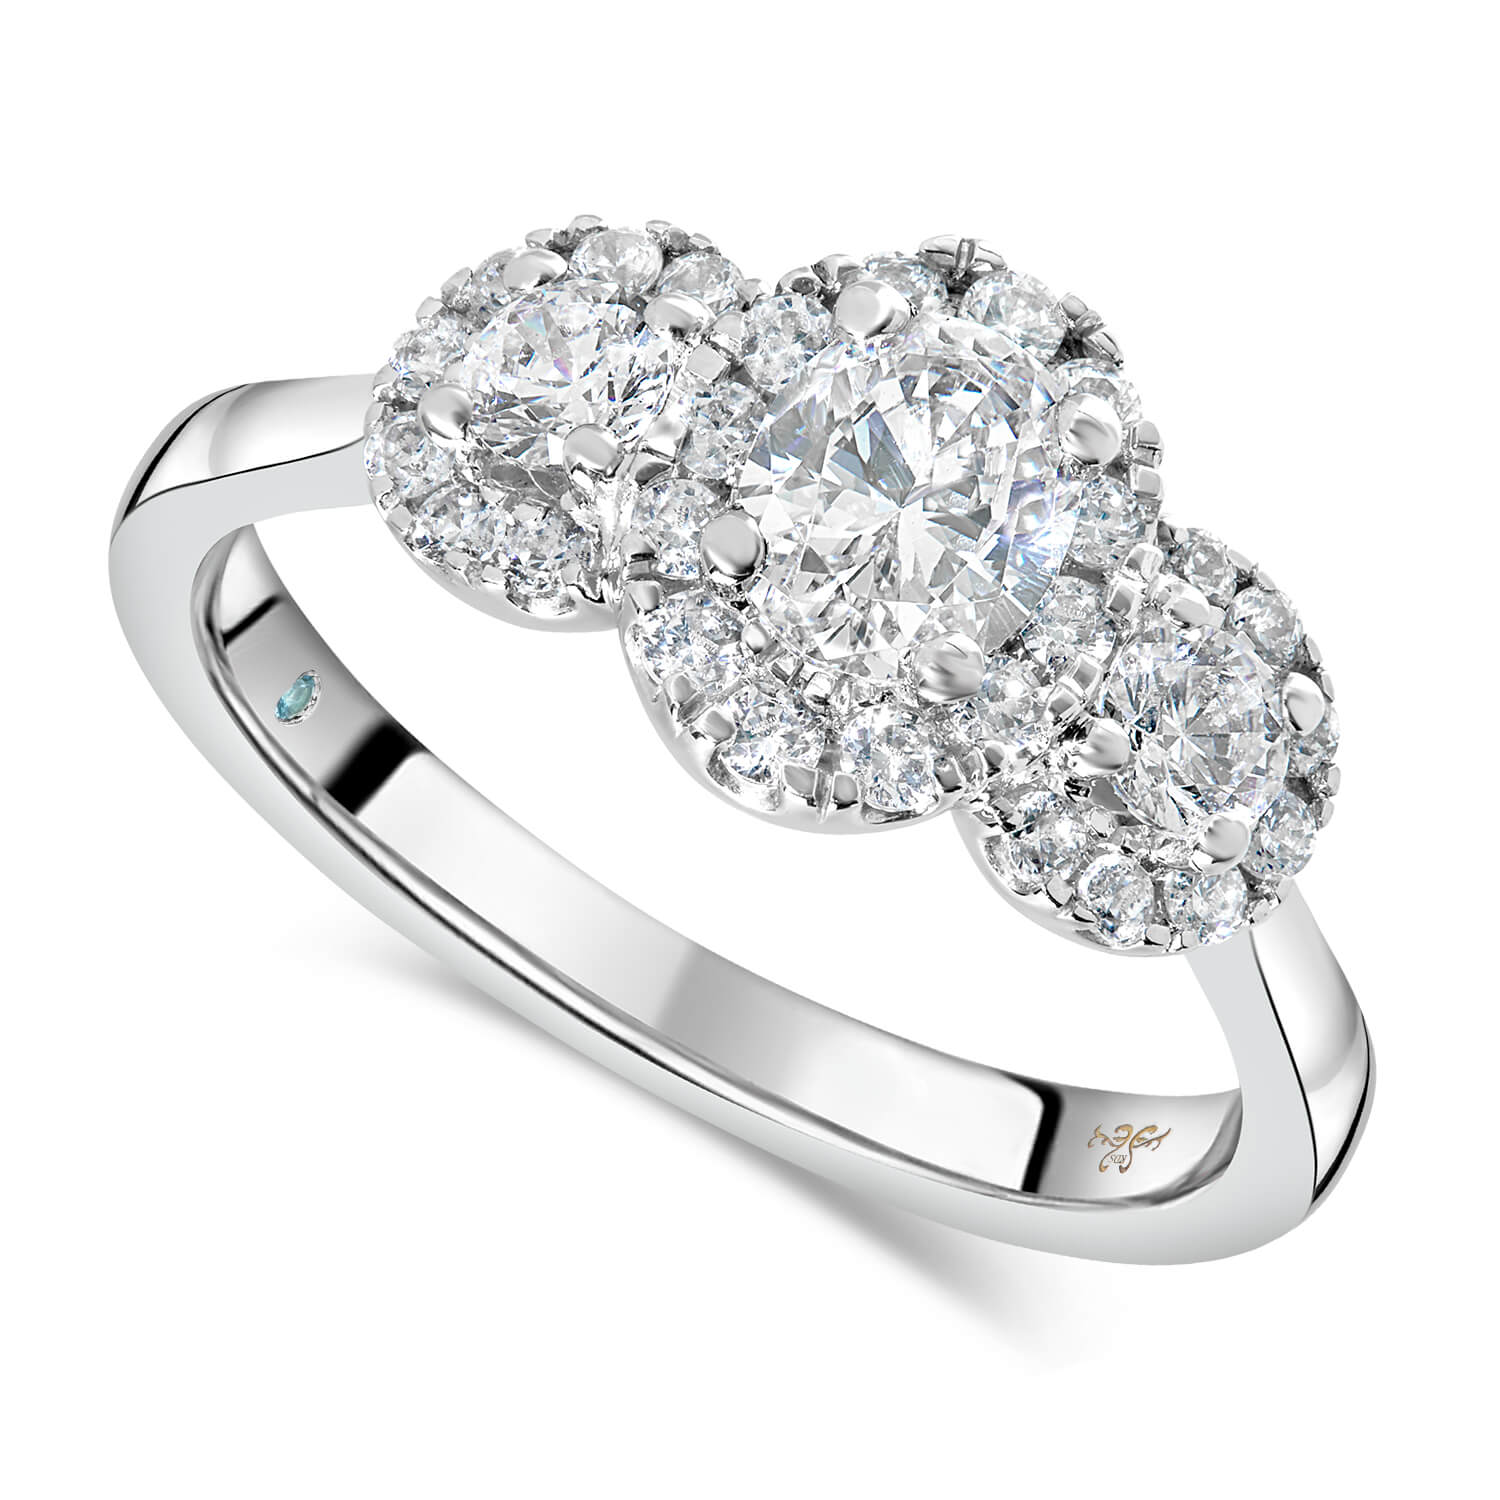 Kathy De Stafford 18ct White Gold ''Ivy'' 3 Stone Oval Center Halo 0.85ct Ring